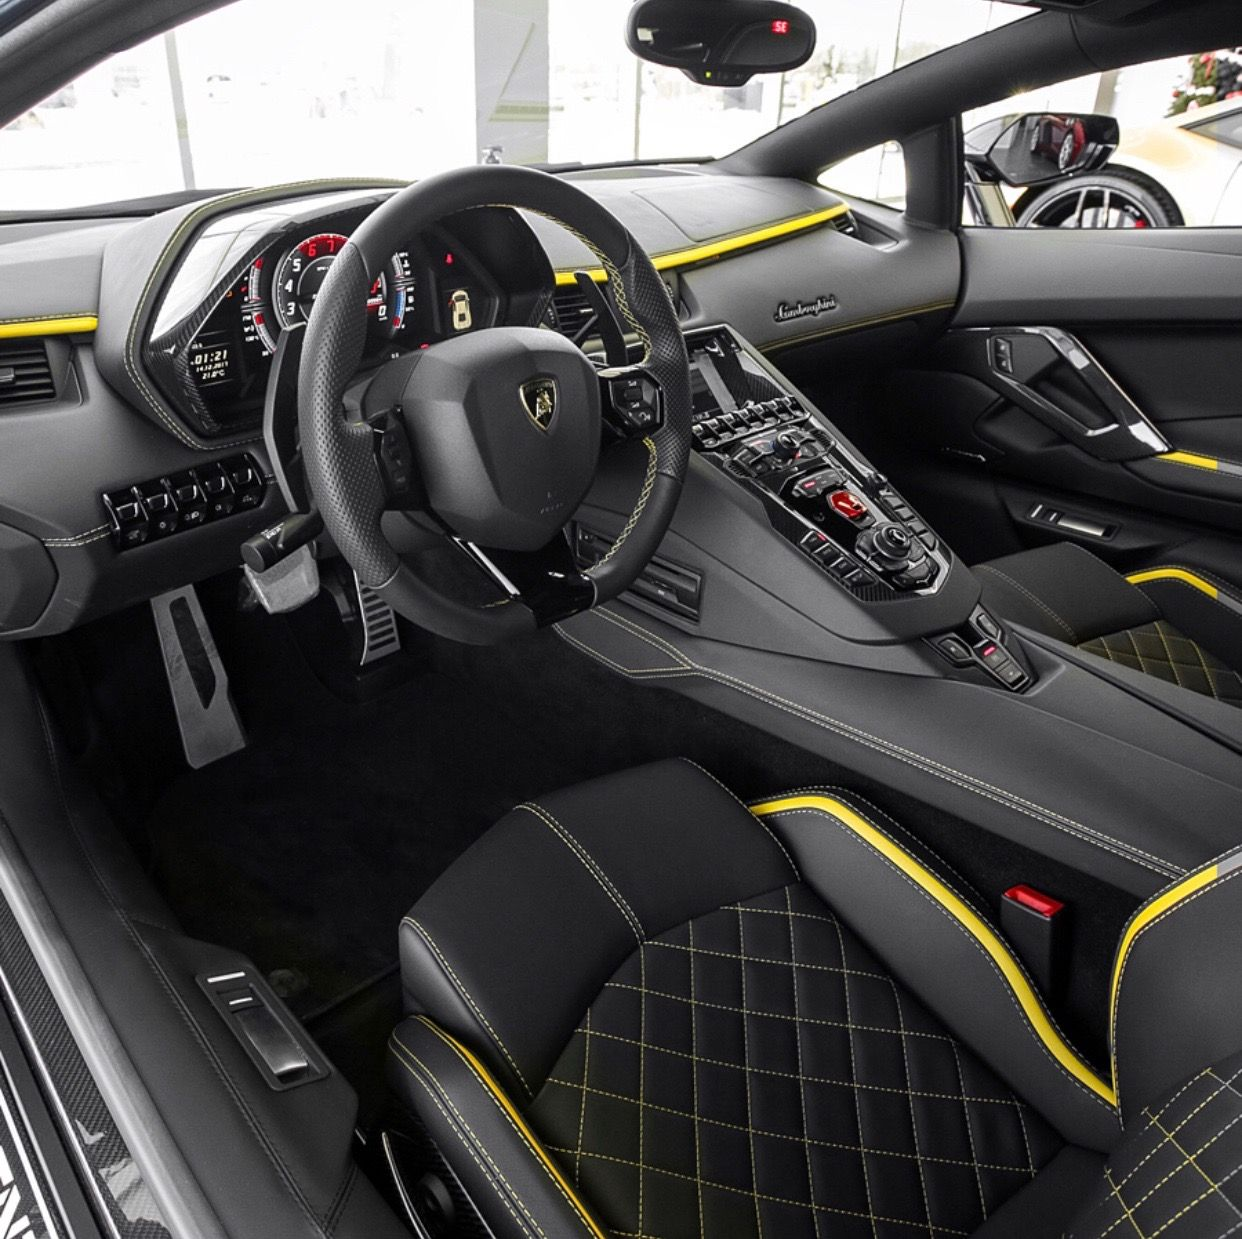 2013 Lamborghini Gallardo Interior: Interior Of The Lamborghini Aventador S Painted In Blu